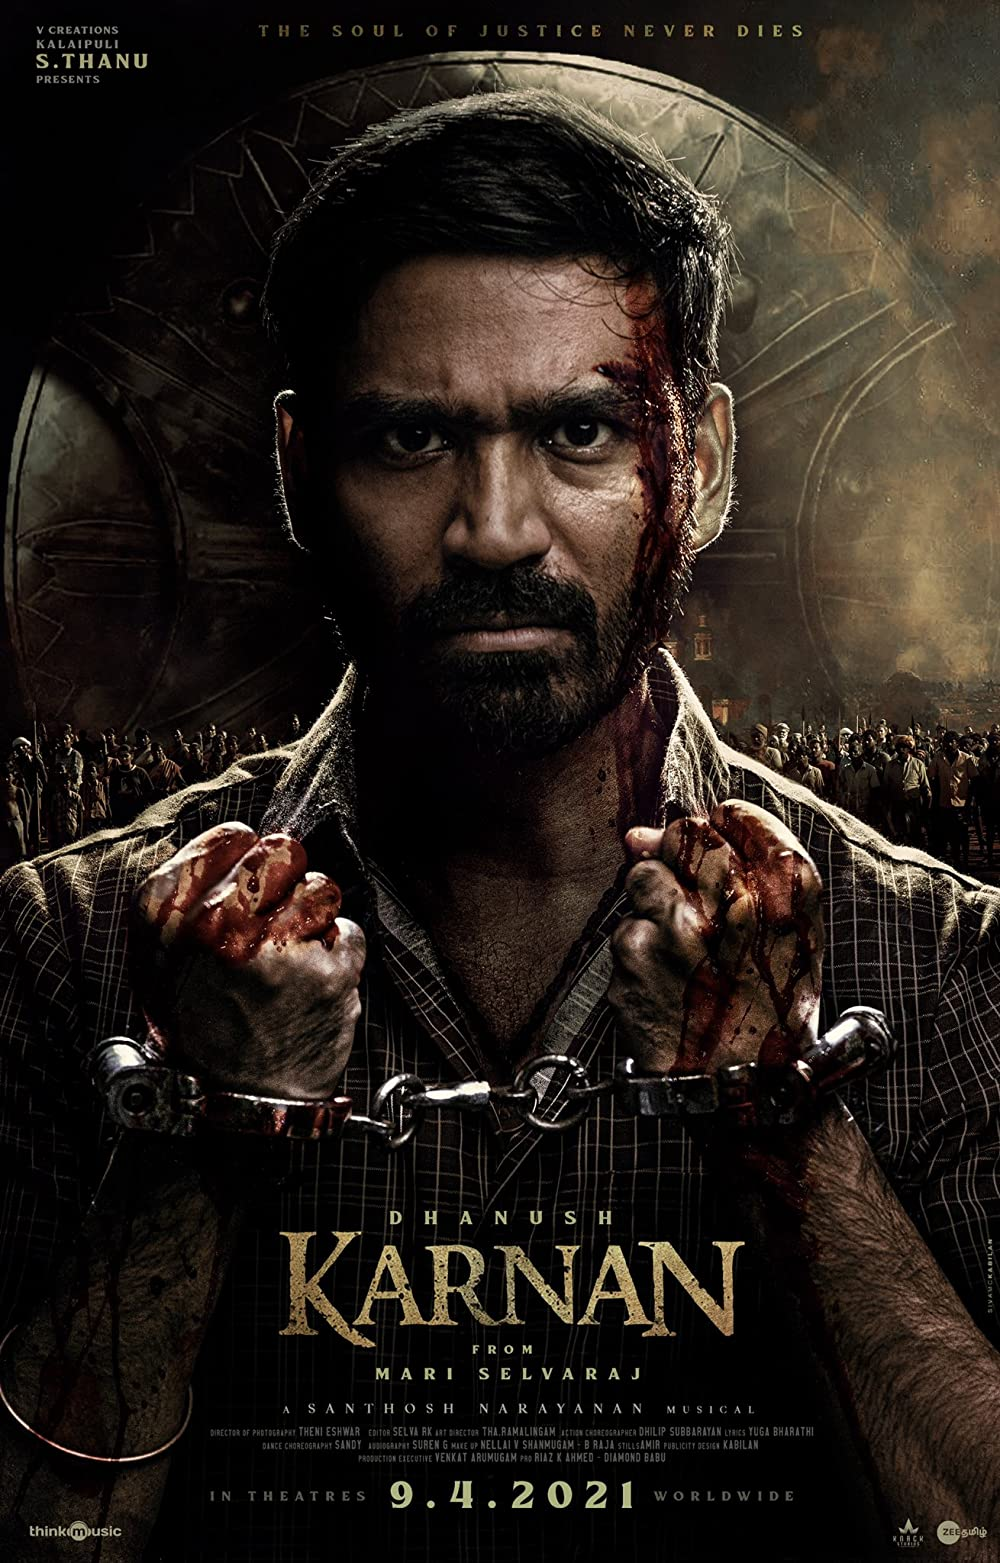 Karnan 2021 Tamil 720p WEB-DL 1.2GB With Bangla Subtitle